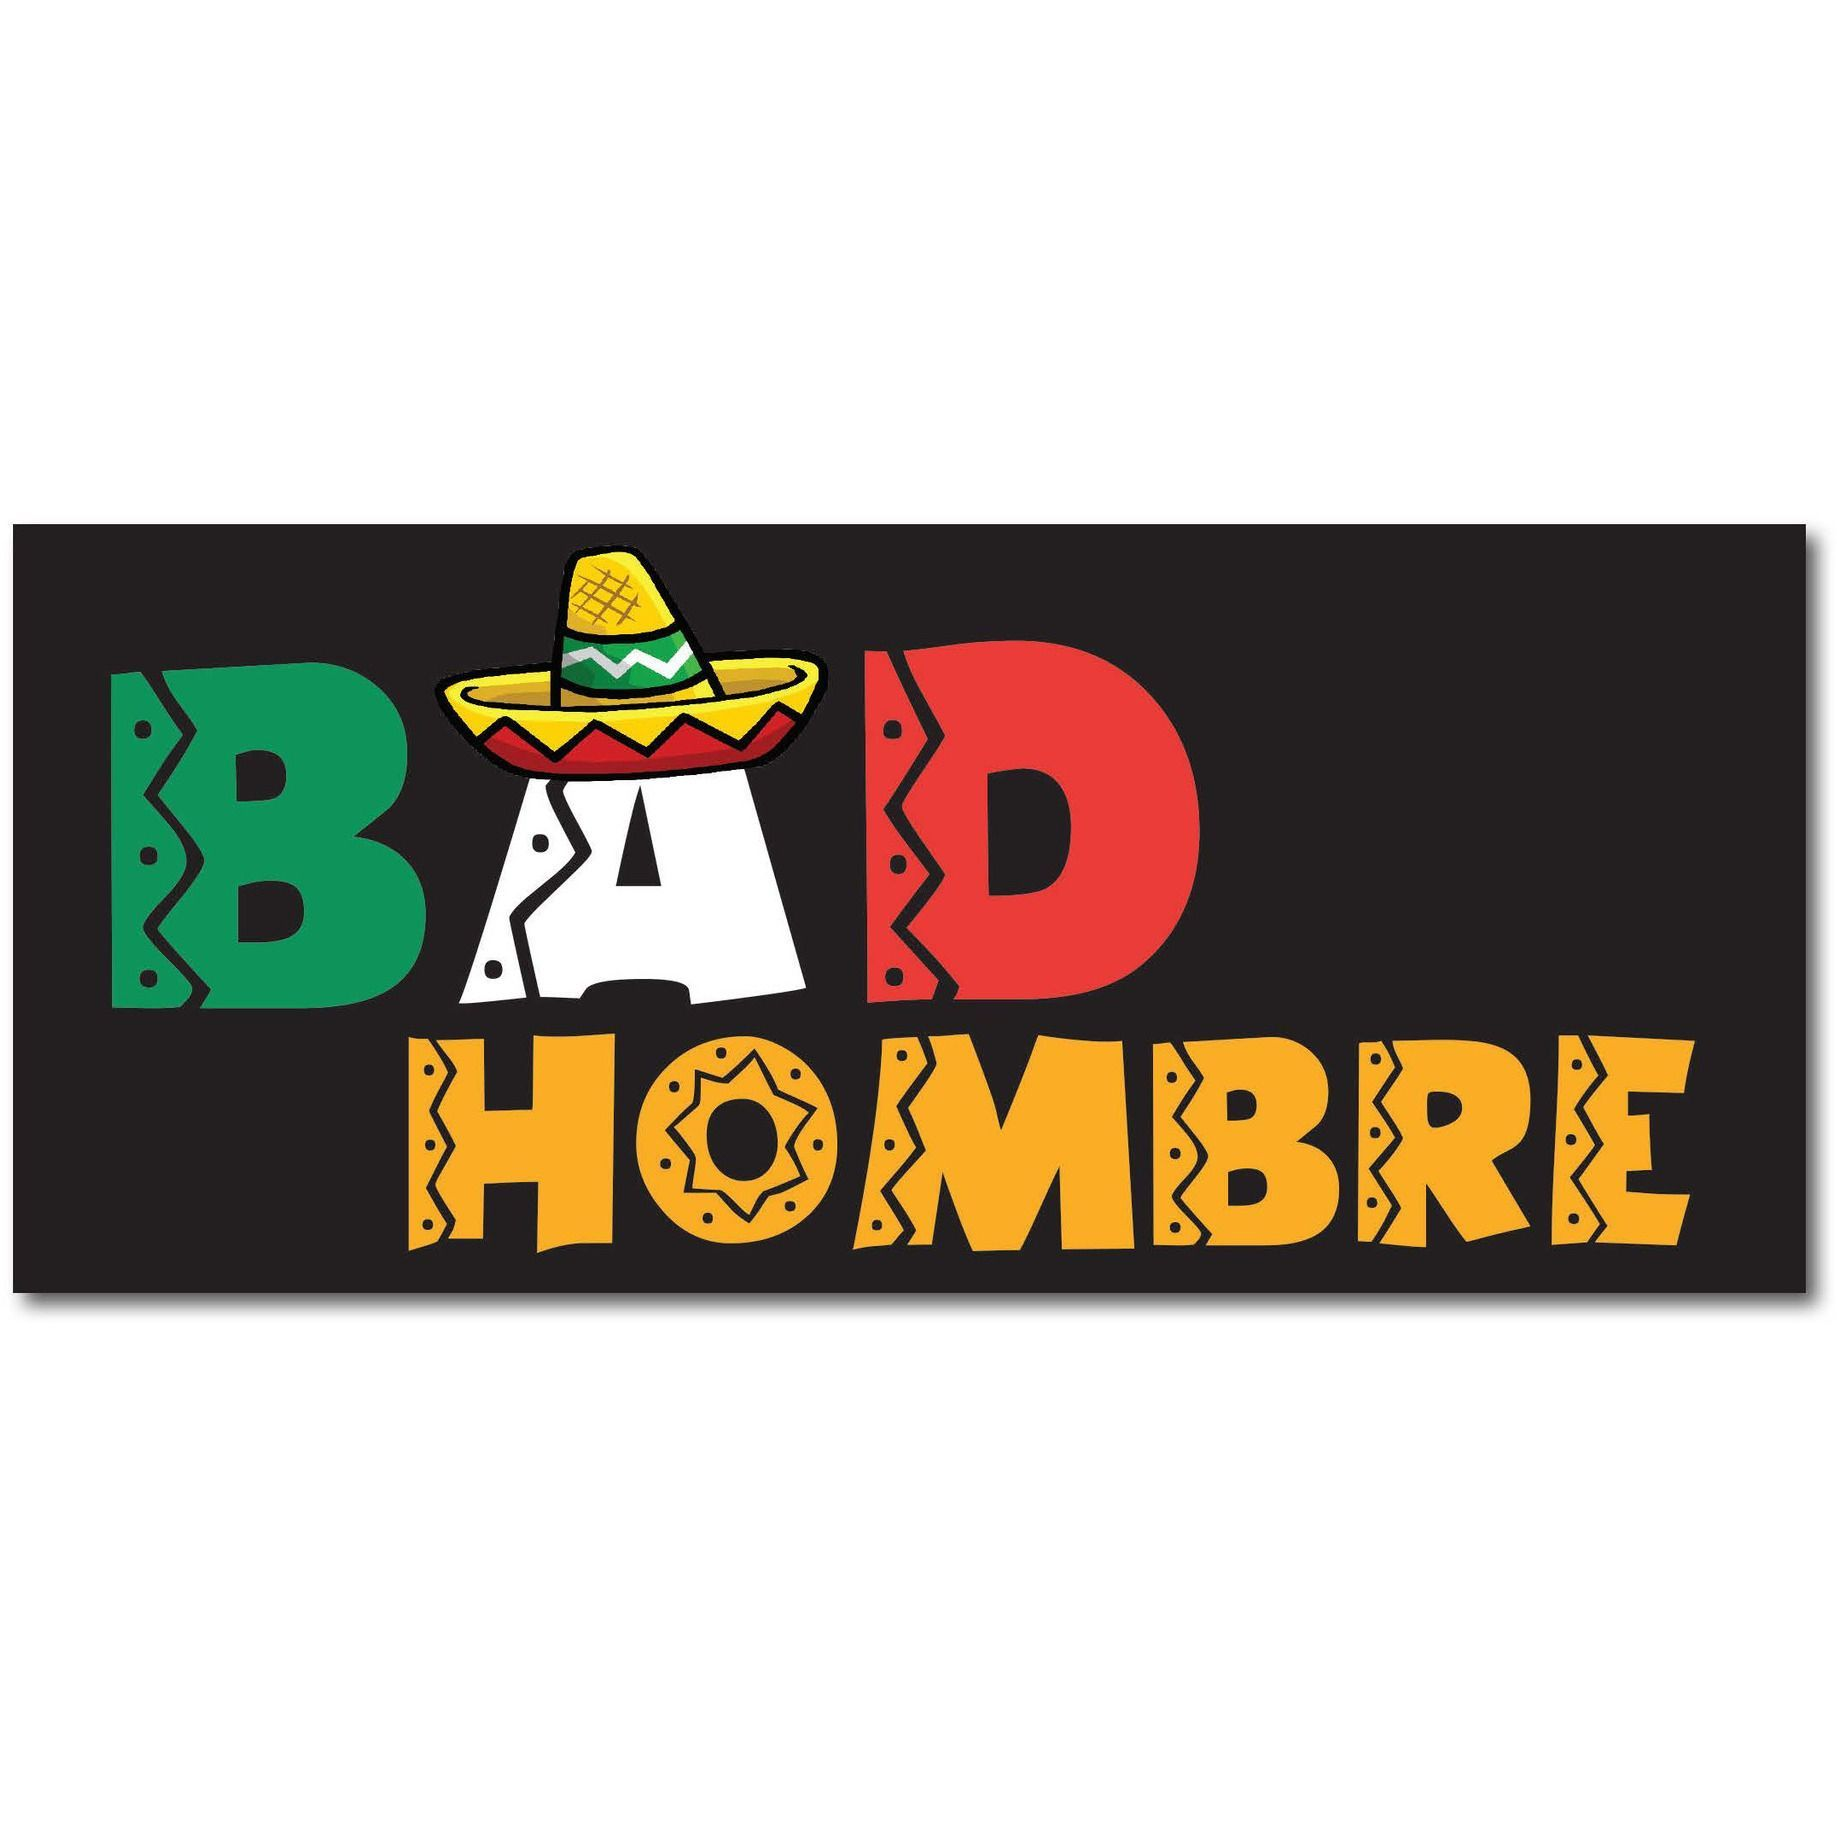 Bad hombre mexican flag sombrero trump 2016 7x3 bumper sticker decal made